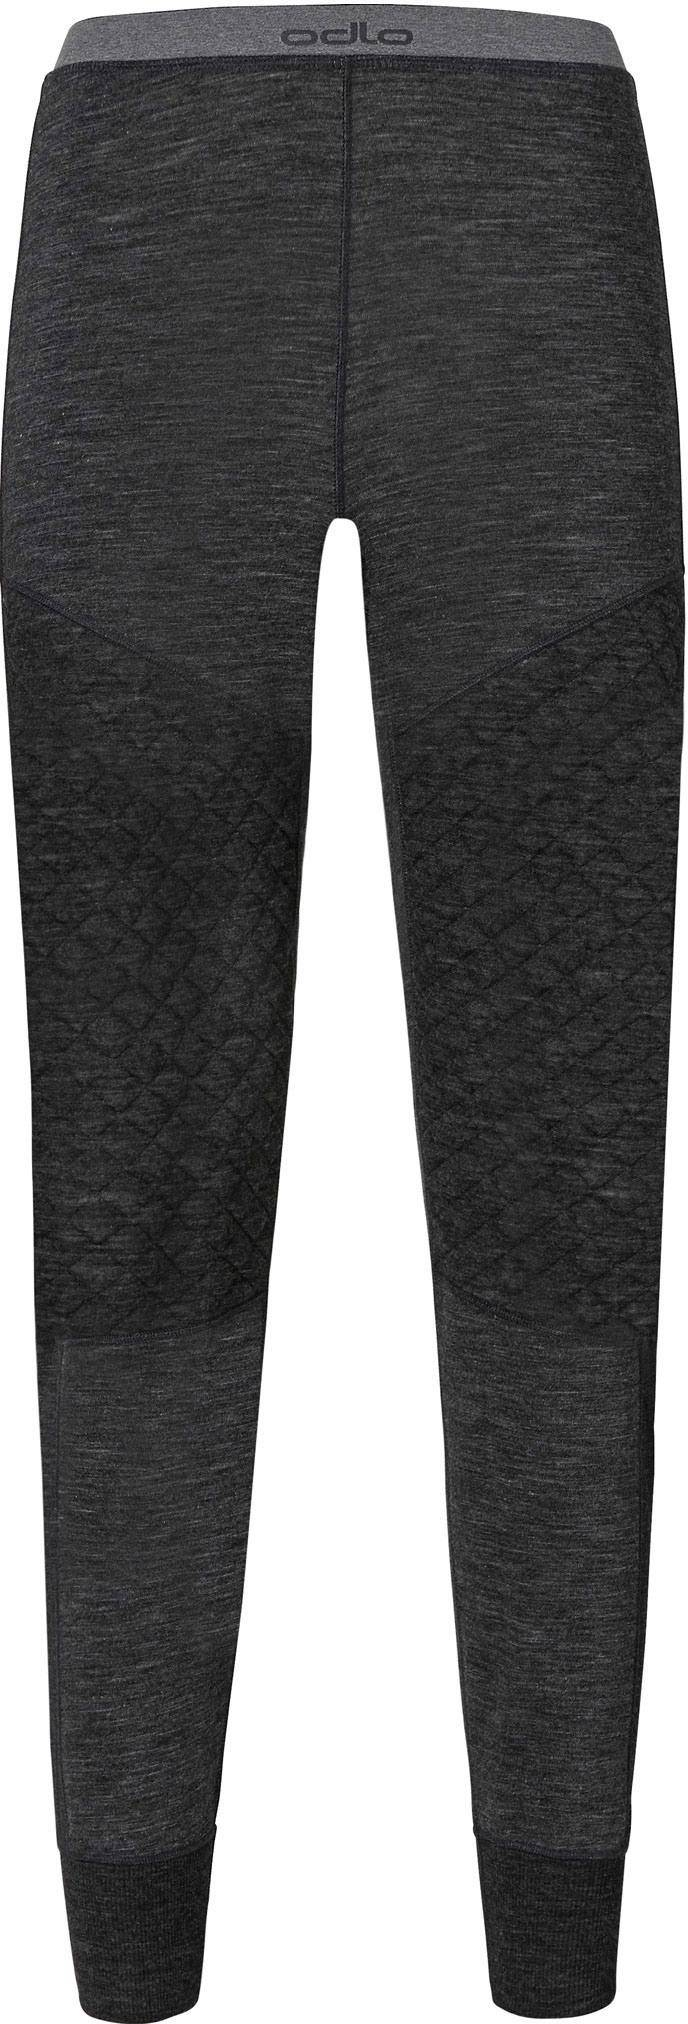 Odlo Revolution X-Warm Long Pants Women